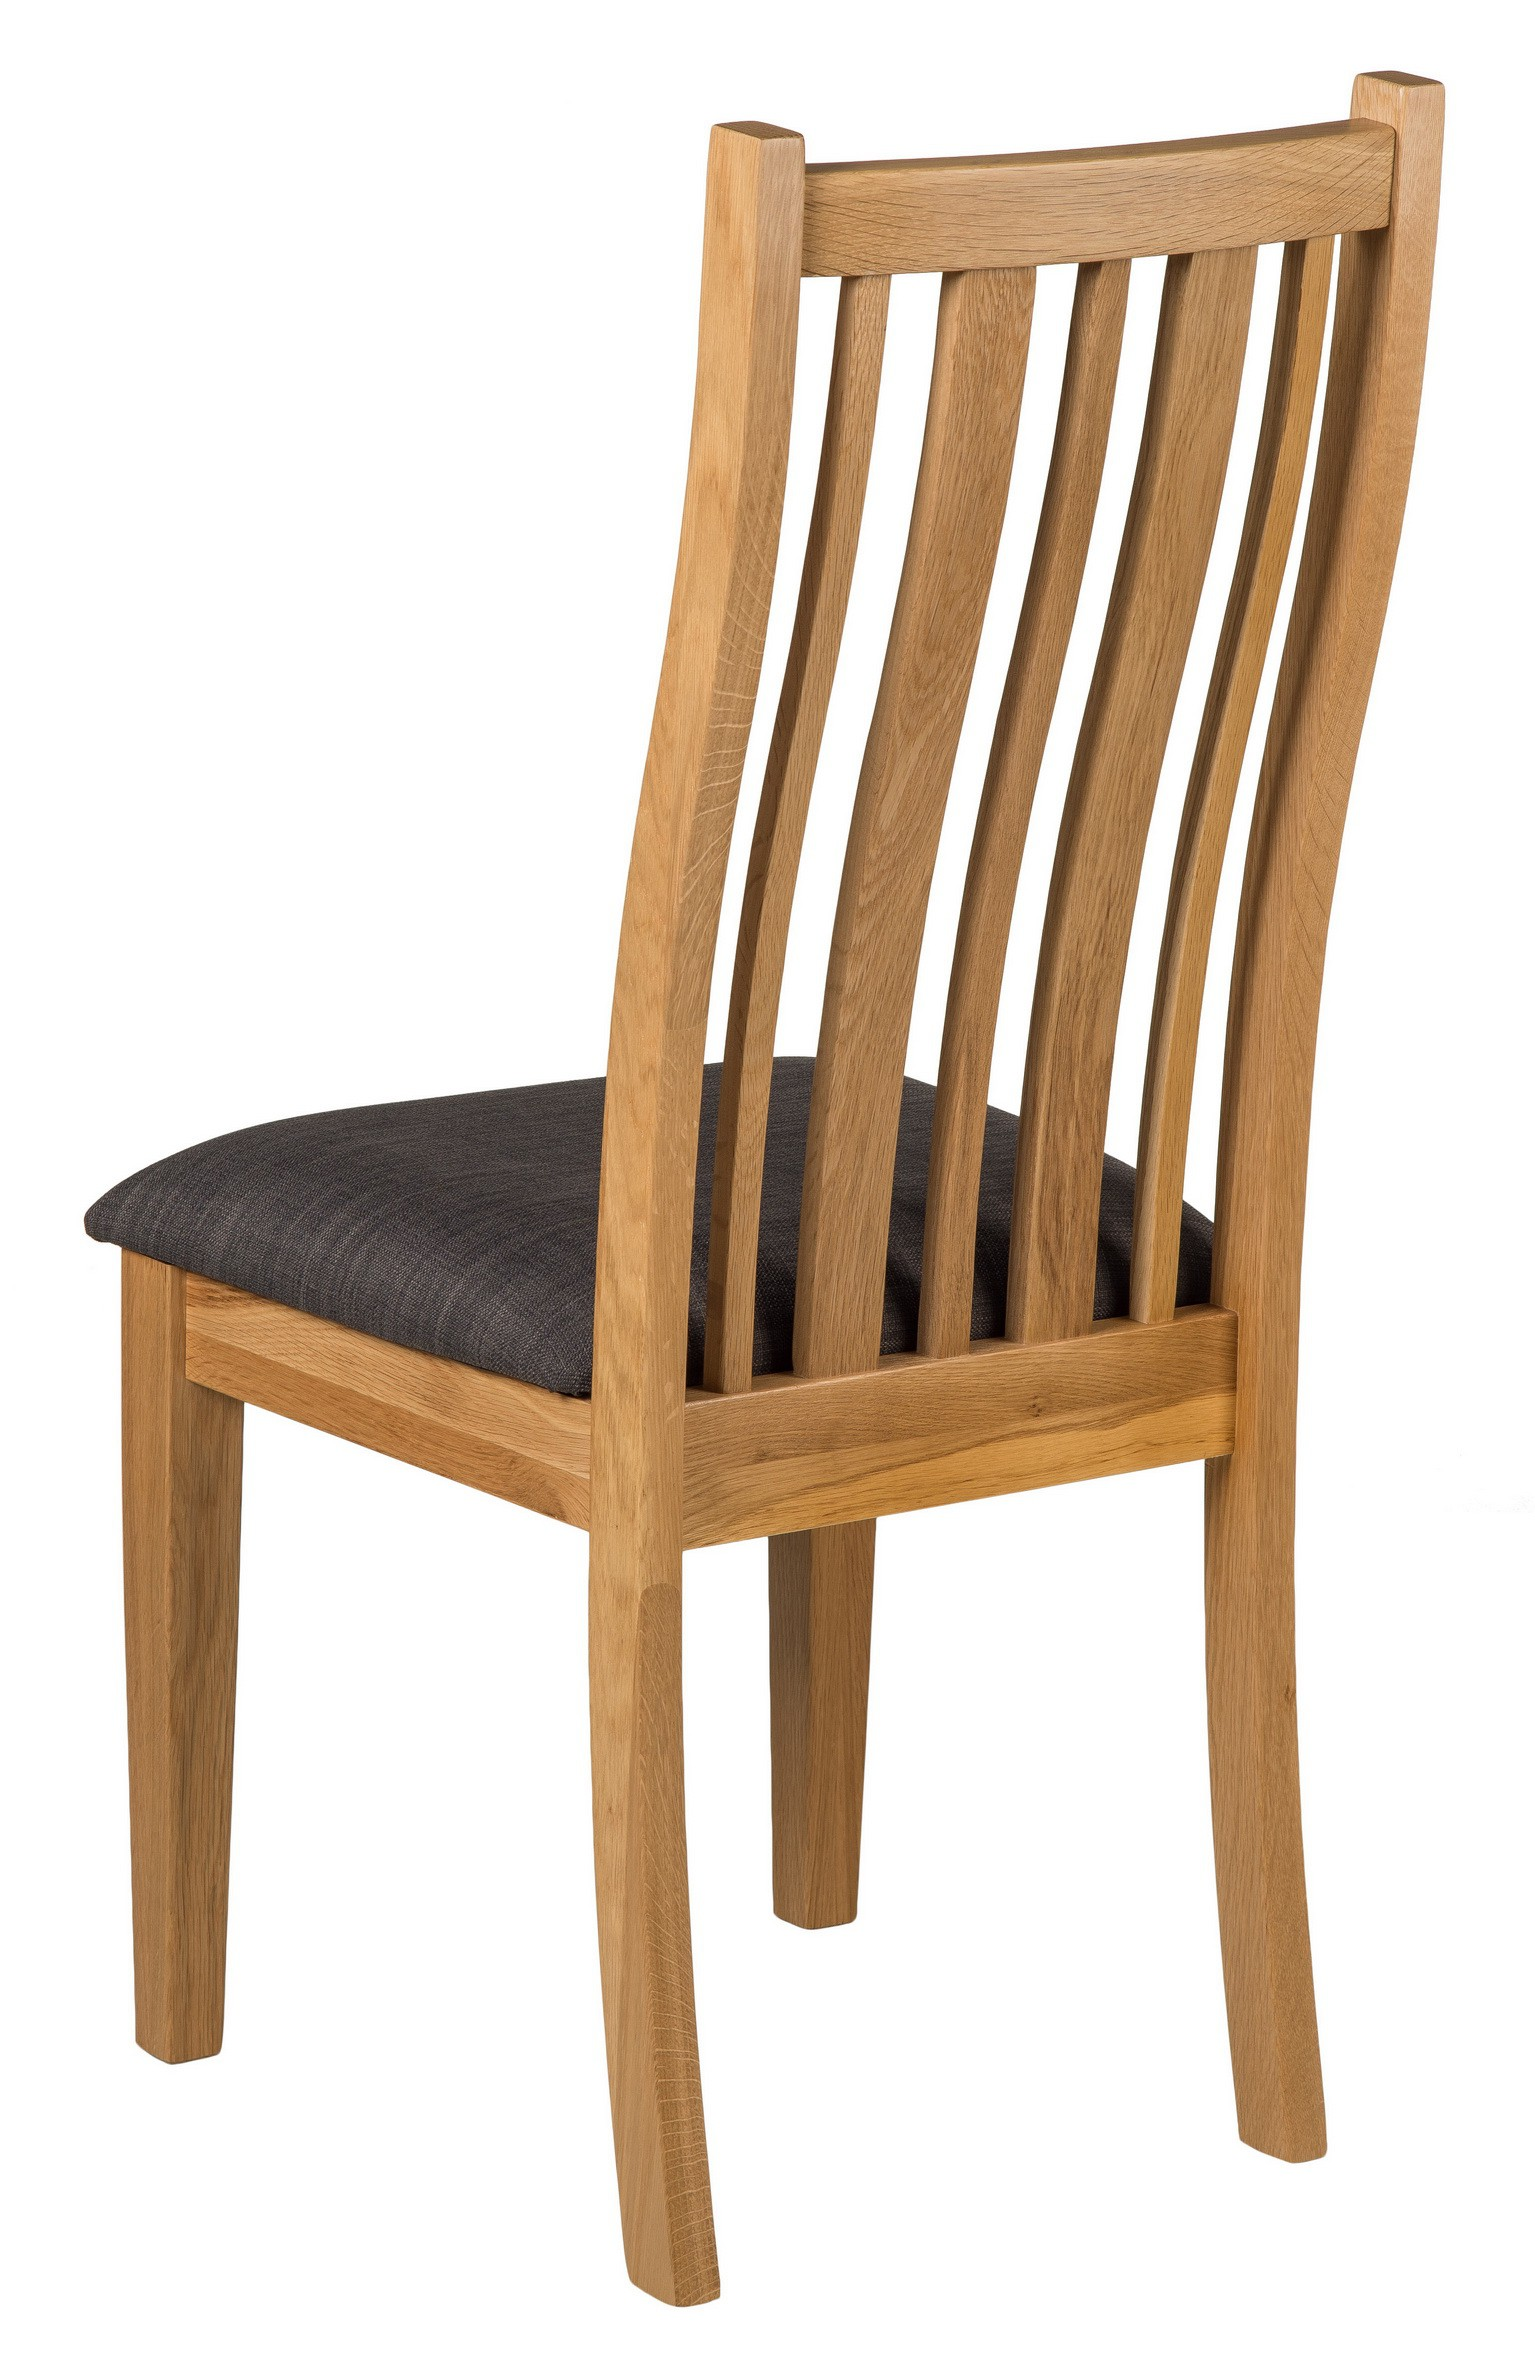 Oak Chair With Charcoal Grey Fabric Seat Pad Pair